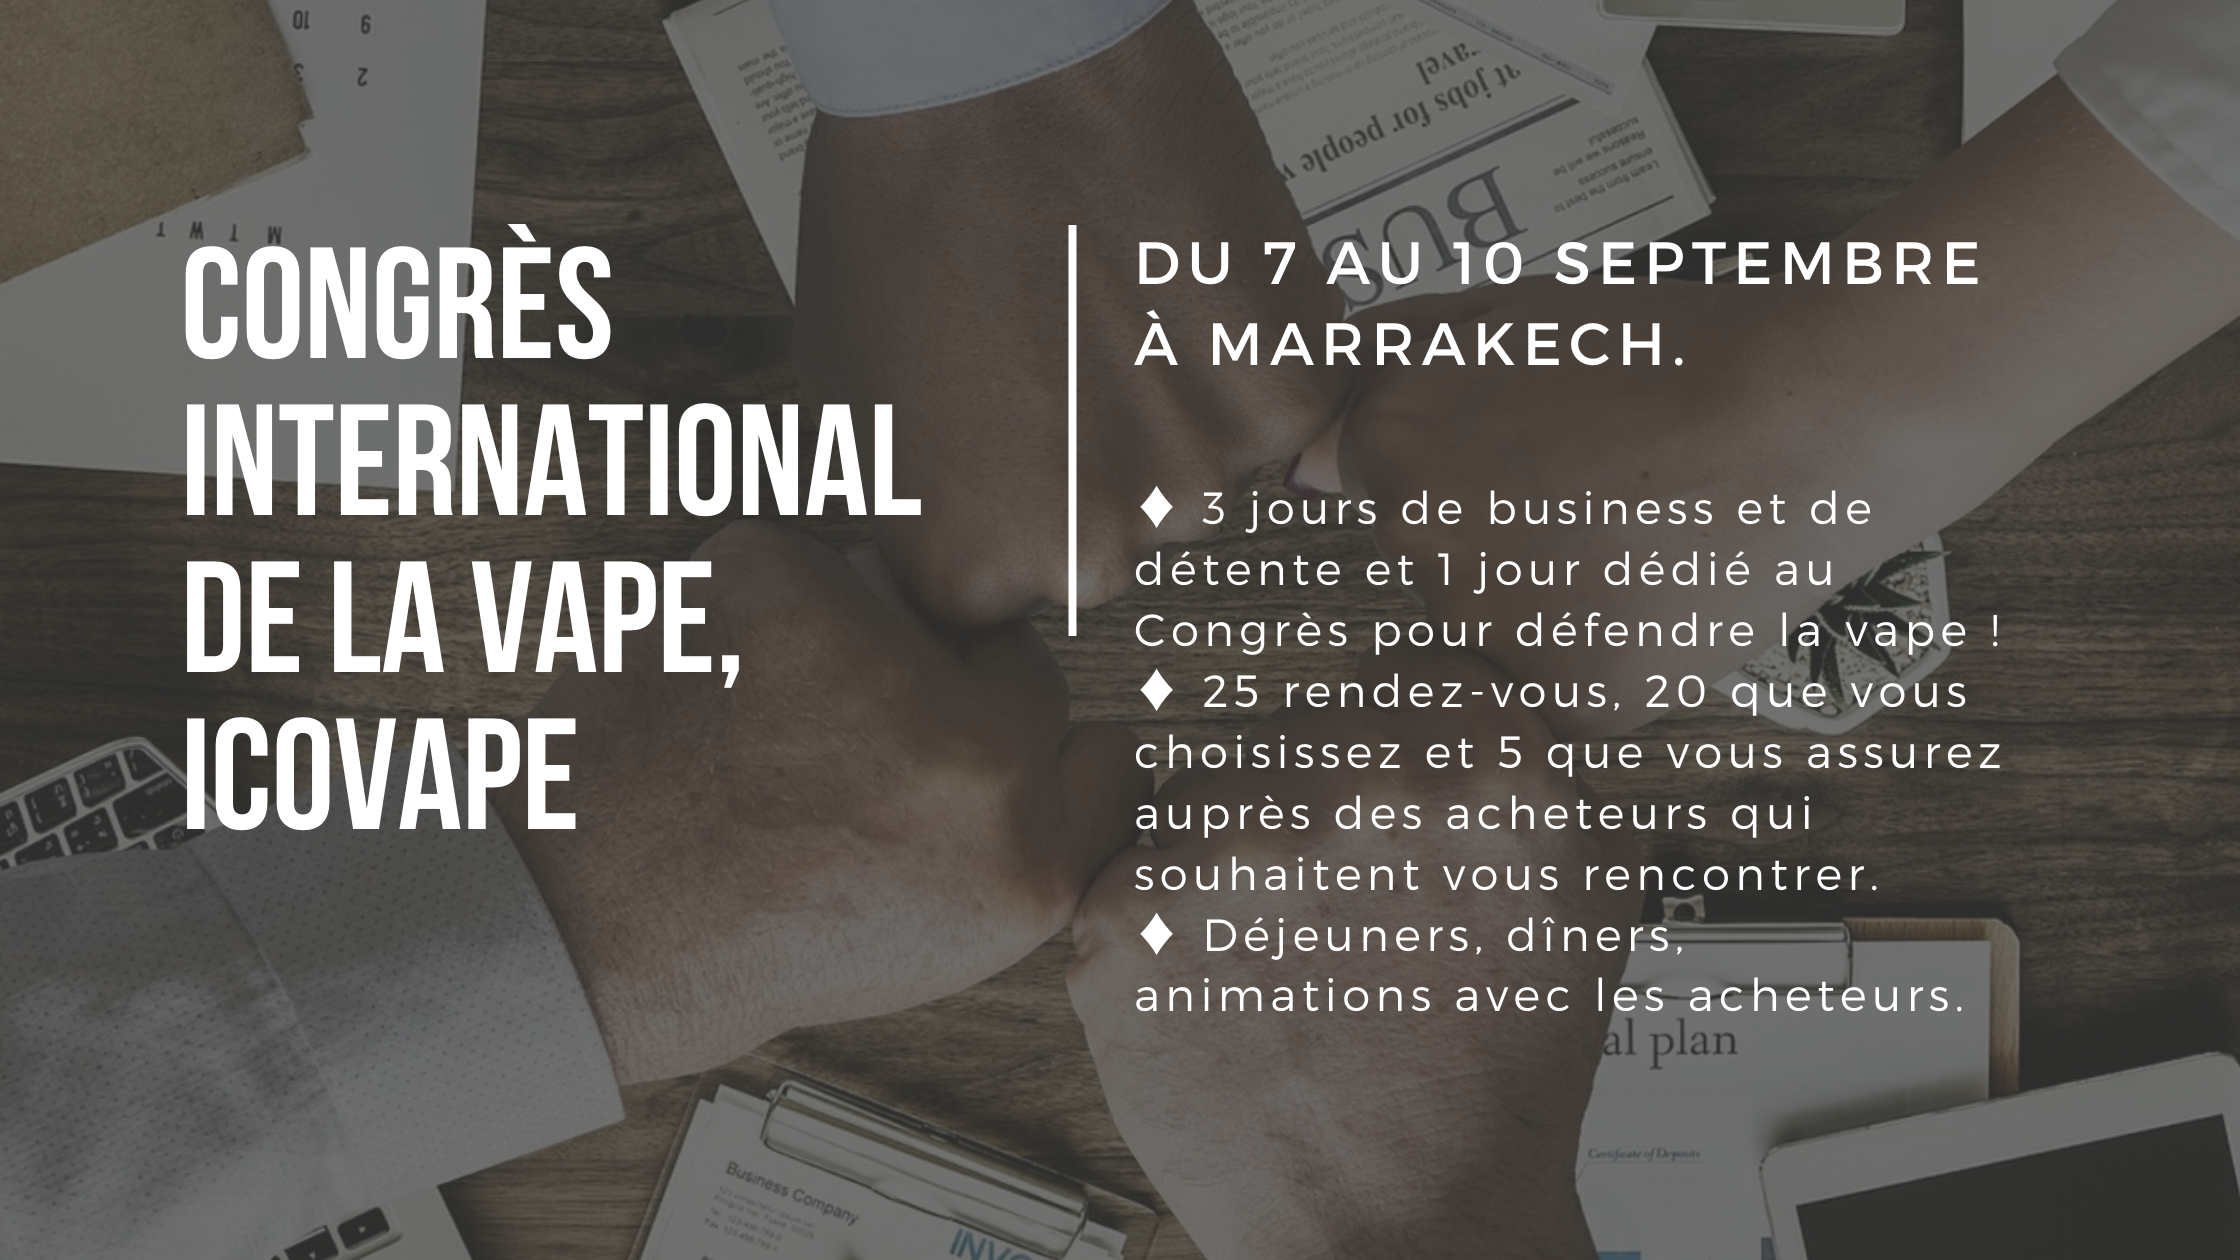 Congrès International de la vape